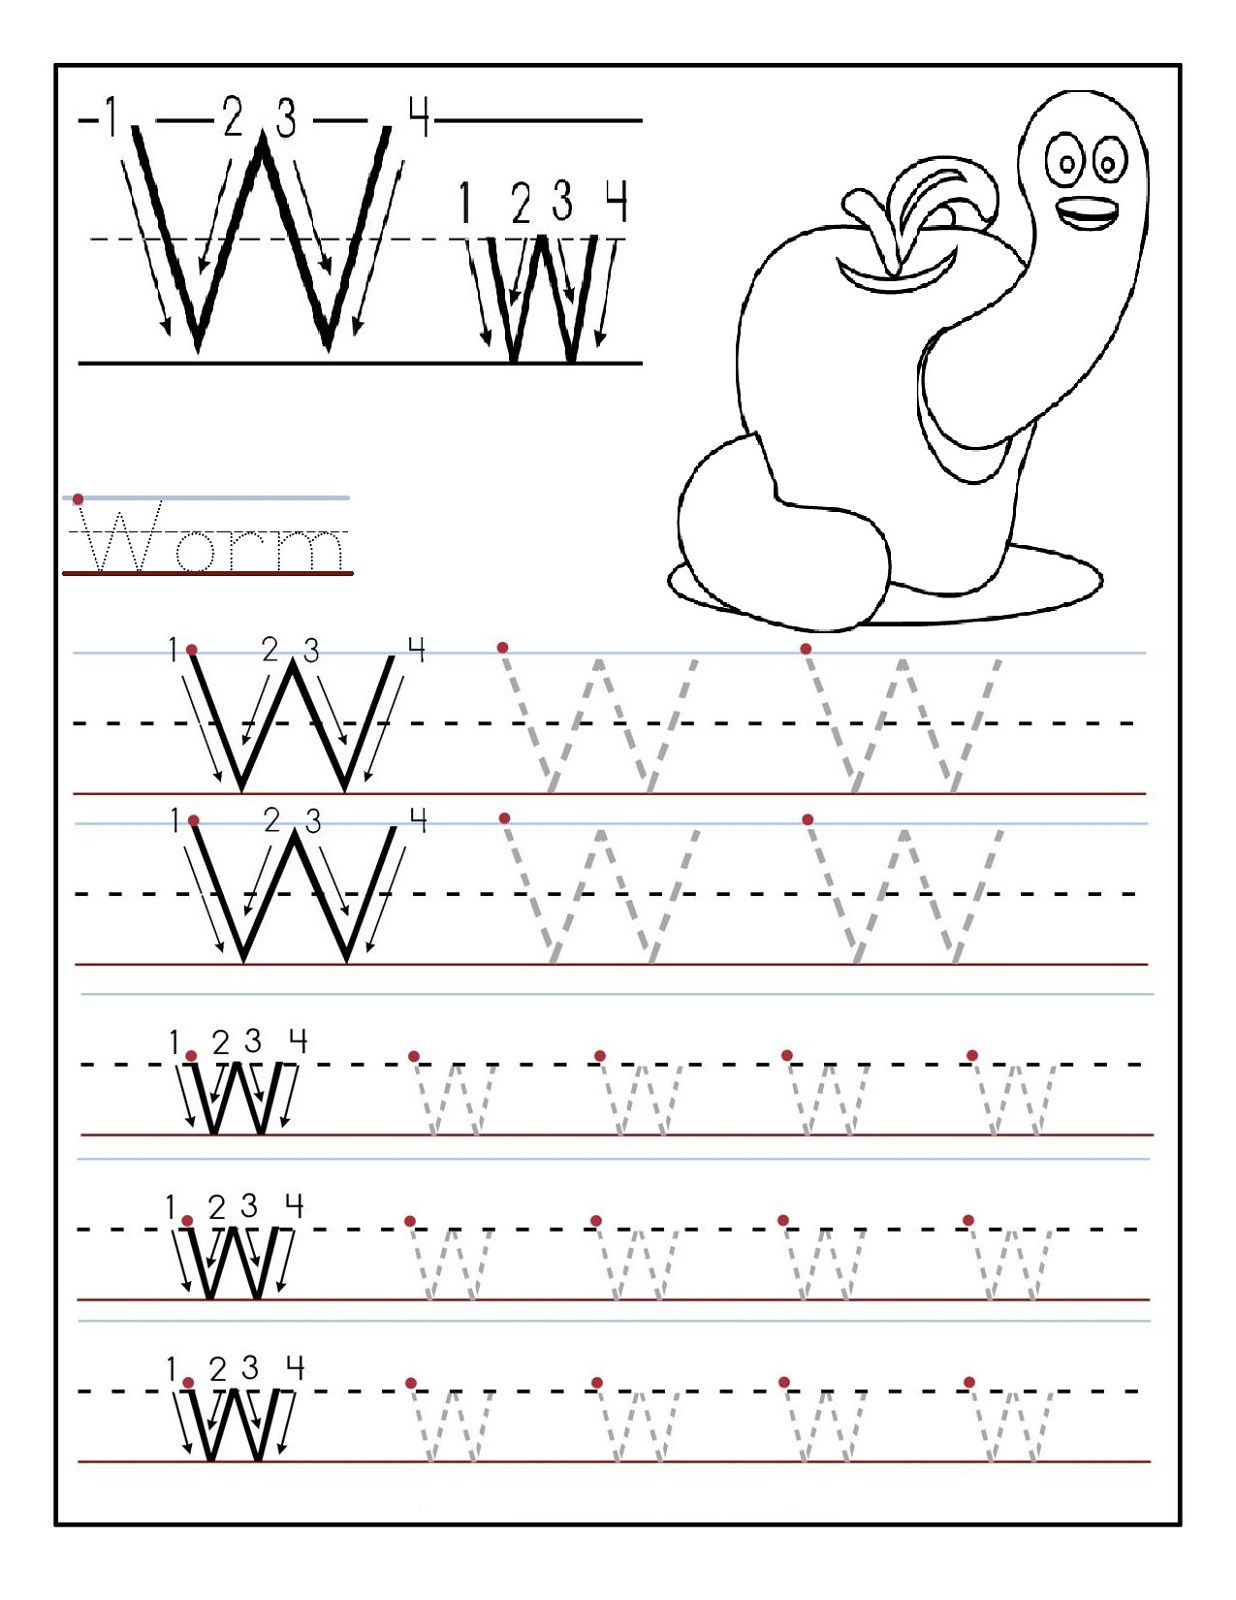 Preschool Printables Letter W For Students